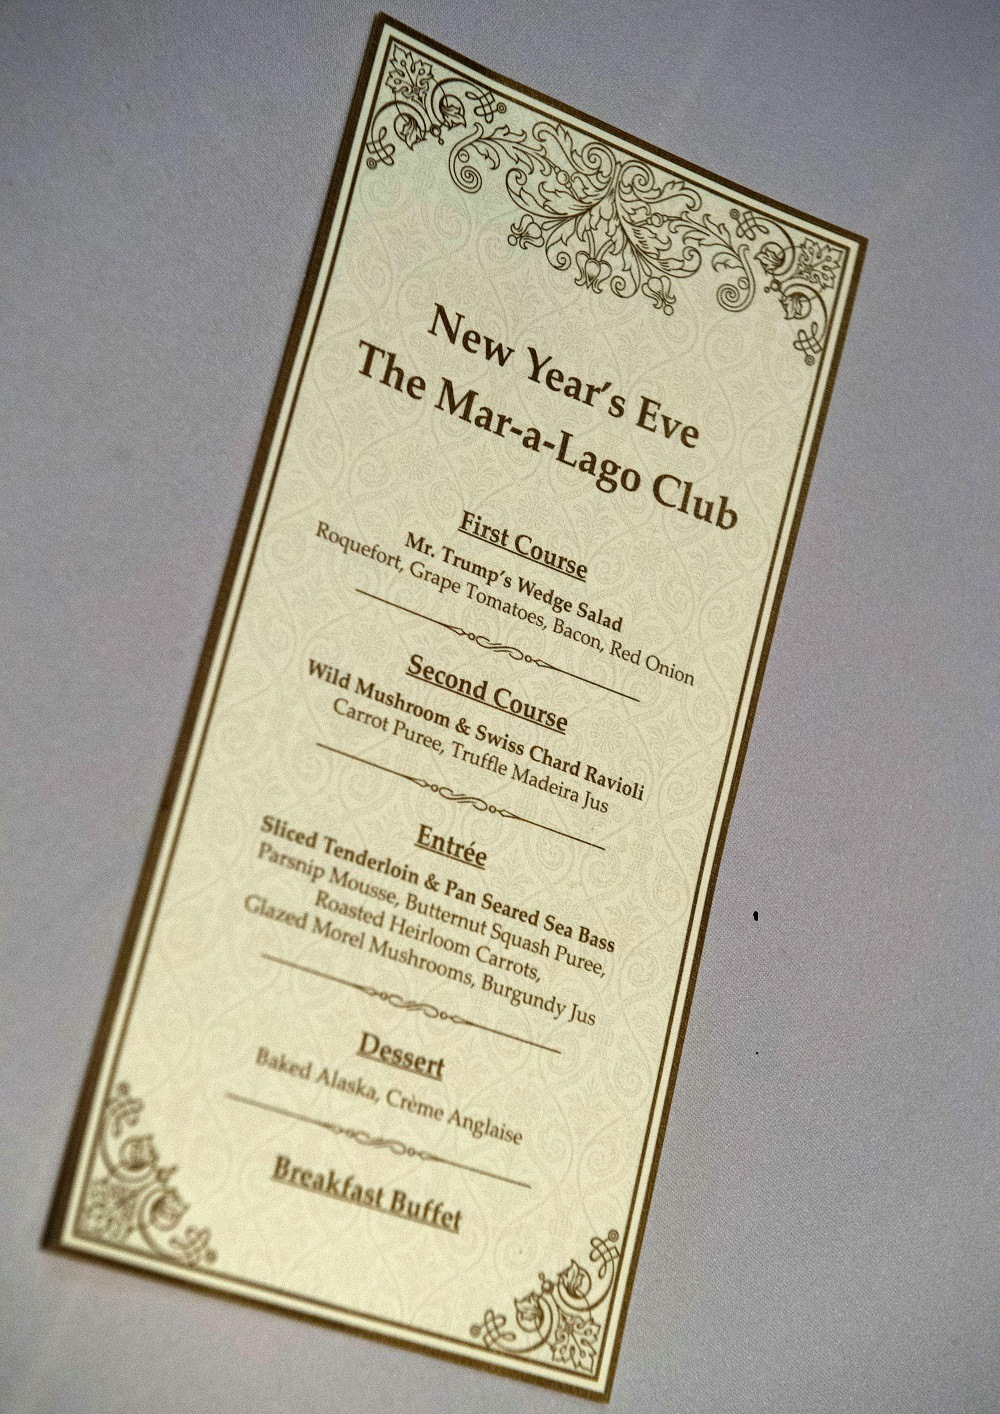 The menu for US President-elect Donald Trumo's New Year's Eve party at the Mar-a-Lago Club